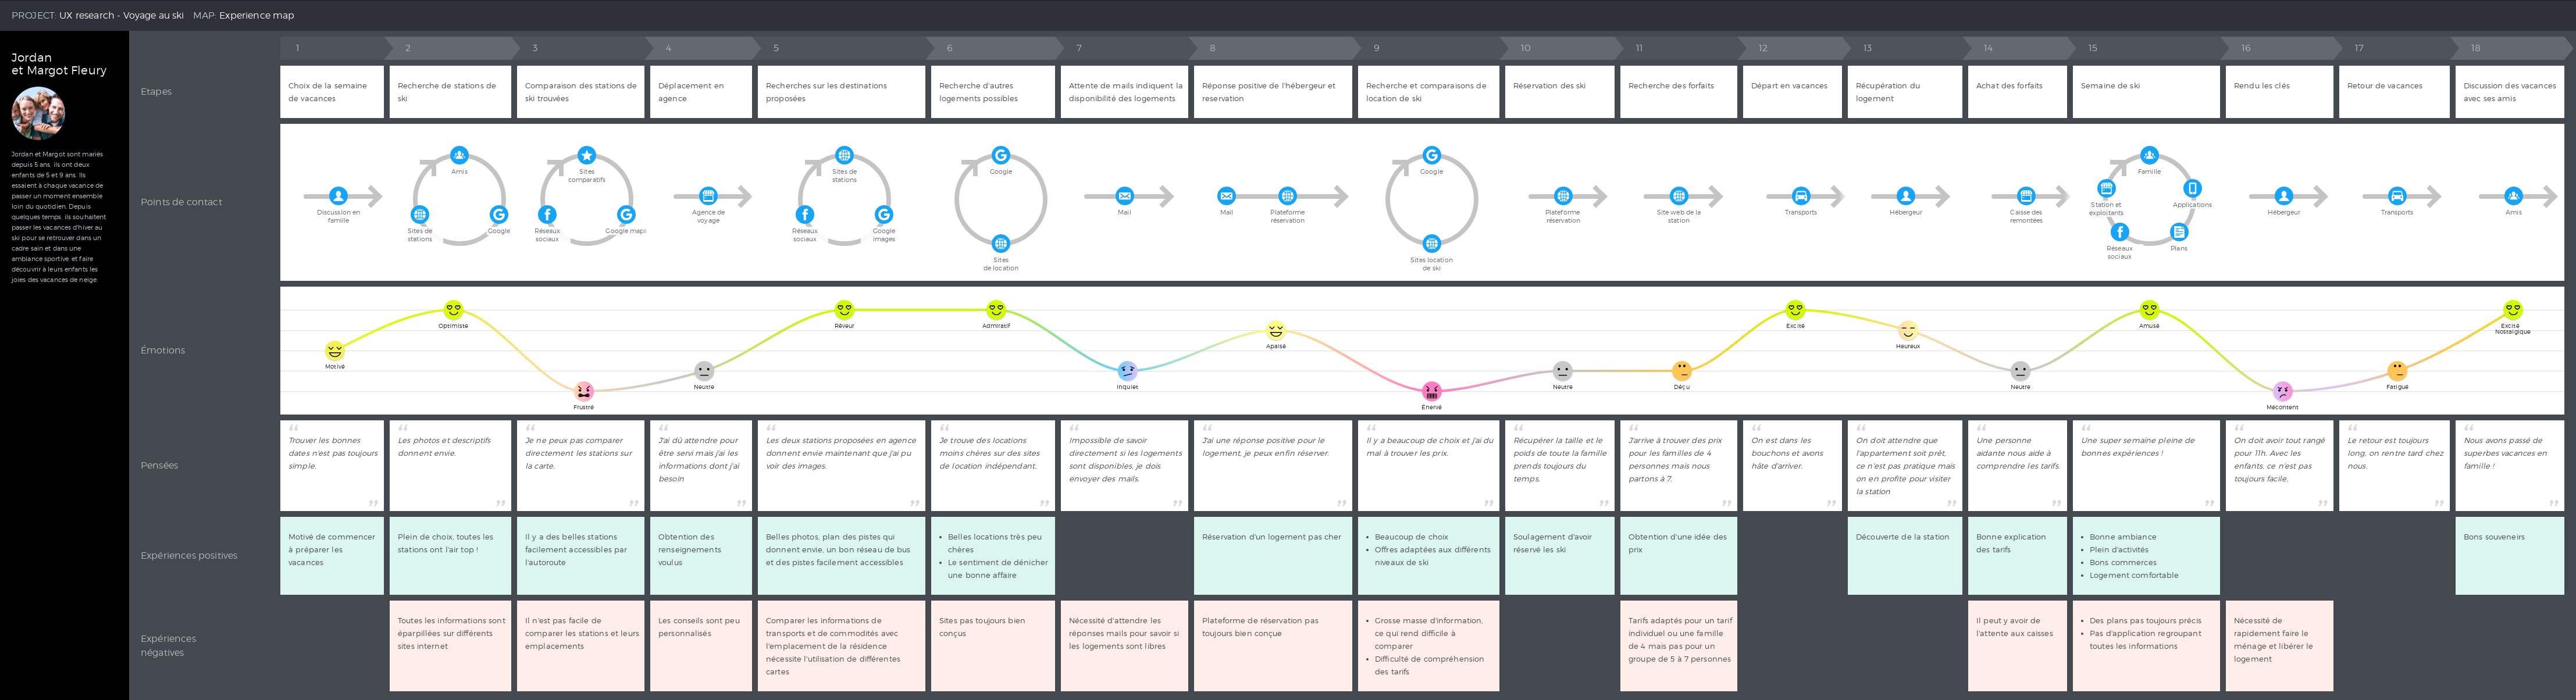 Experience map - UX research